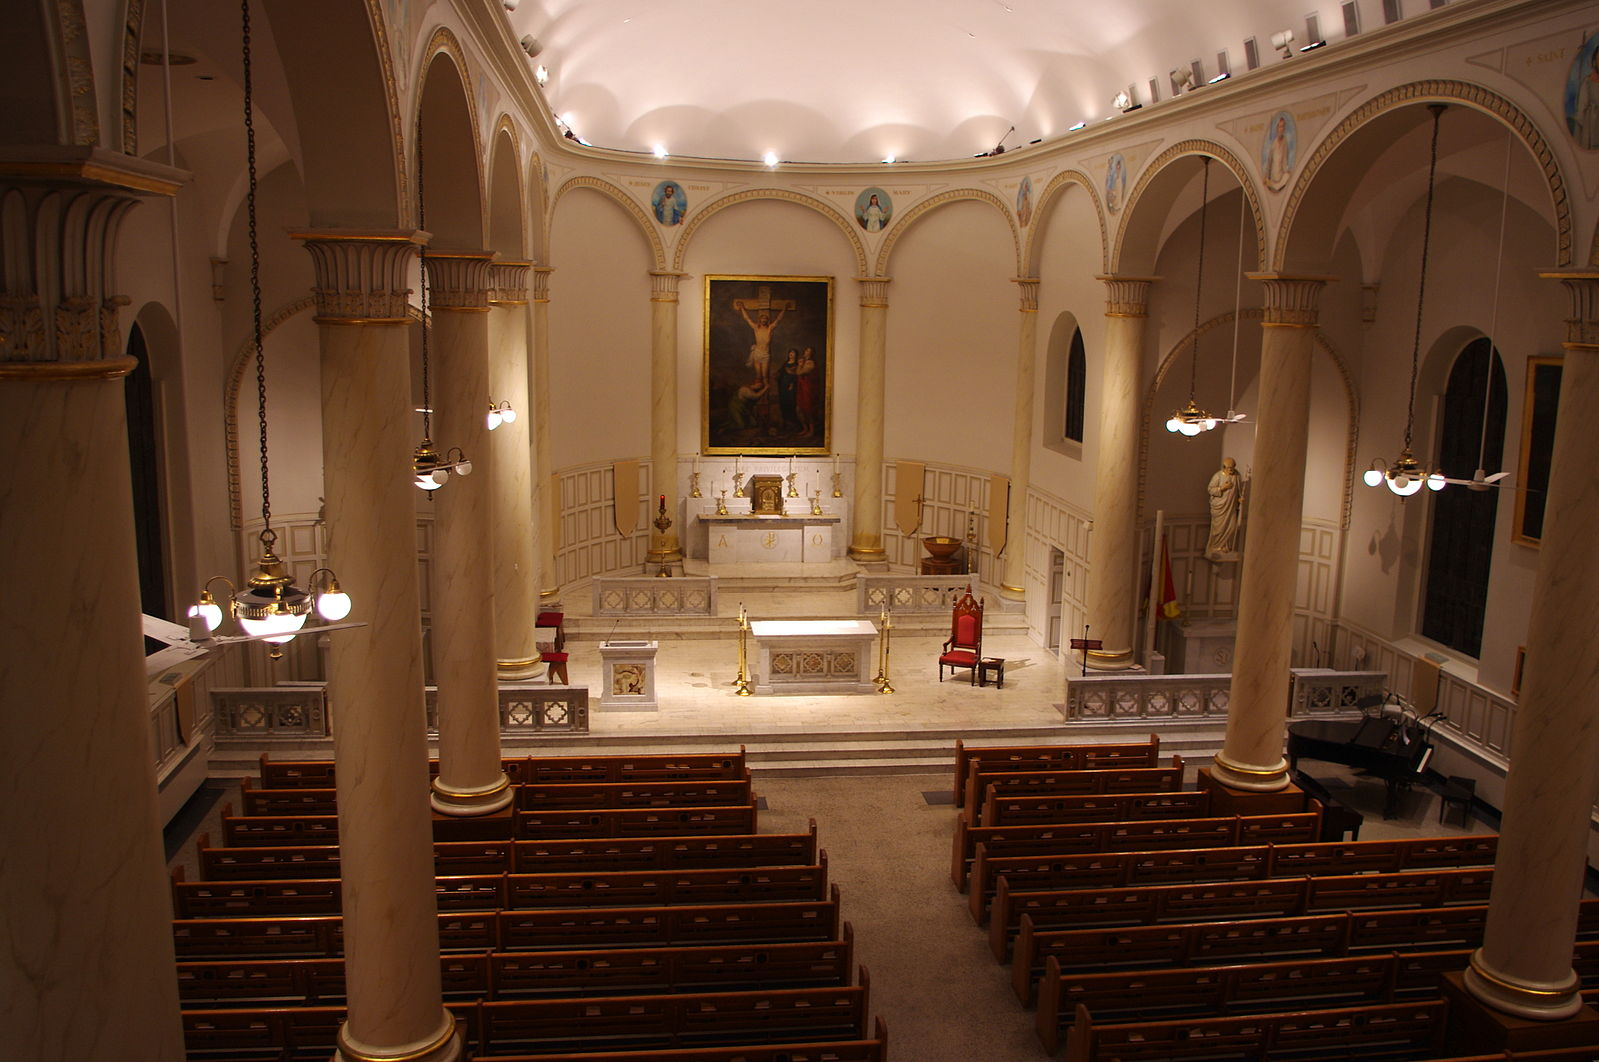 St Joseph Proto-Cathedral - St Joseph Proto-Cathedral is the original seat of the Bishop of the Midwest. When the Diocese of Bardstown was founded in 1808 as the head of Catholicism in the territories that were not yet states, (including Fort Wayne and South Bend).